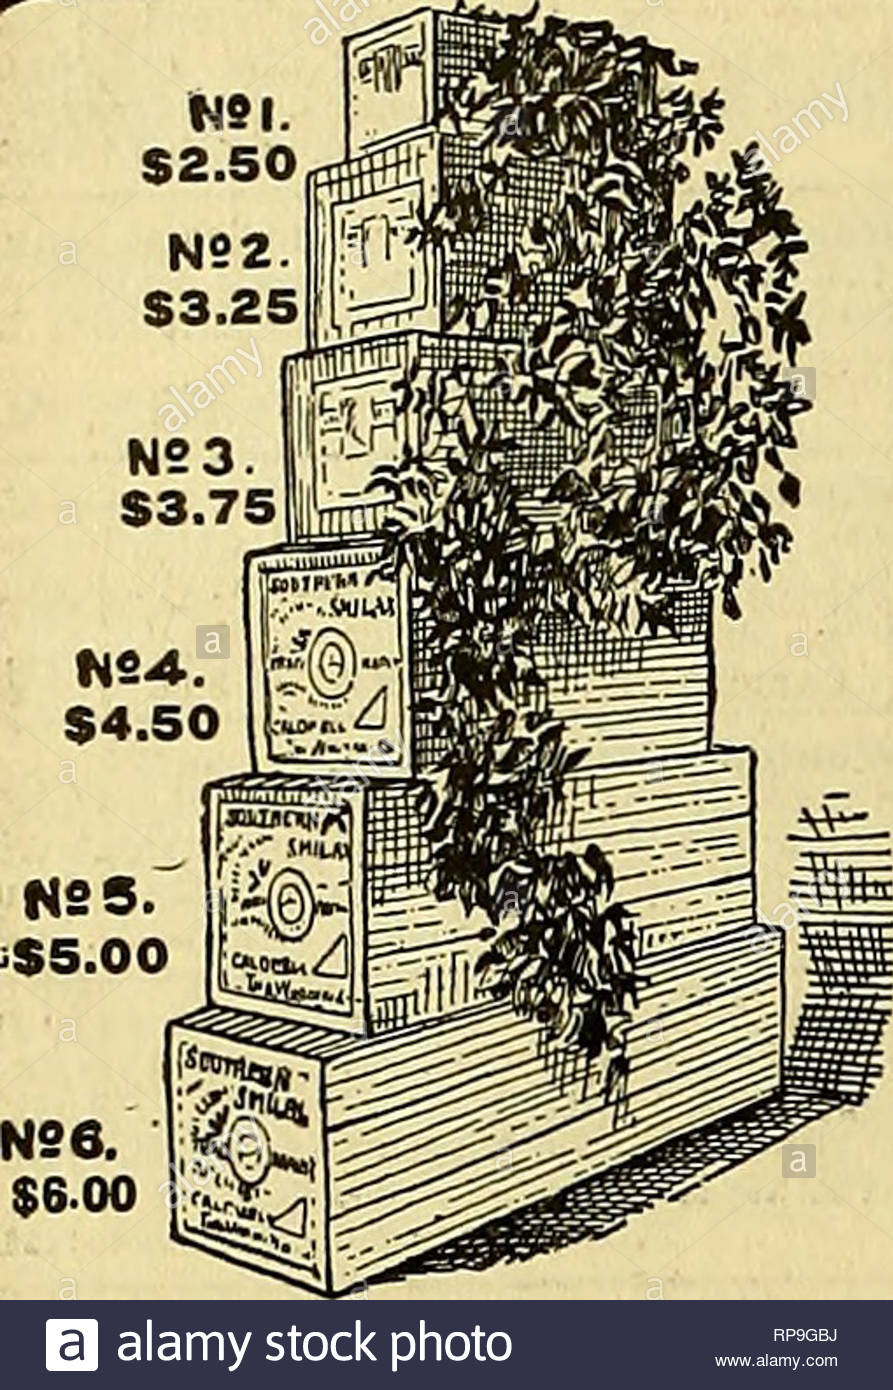 the american florist a weekly journal for the trade floriculture florists 48 the american florist feb 7 msi 250 x u l i p s i quantity per doz american beauties extra select 400 to 500 18to34in 250 to 300 latolsin 150 to 200 per 100 brides bridesmaids and ivory 500 to 1000 meteor golden gates 500 to 1000 liberty 500 to 1200 violetsdouble100to150 violets single 75 to 100 white violets 300 carnations 20j to 300 lily of the valley selected extra long 500 quotquot as good as can be had elsewhere 300 to 400 narcissus paper w RP9GBJ